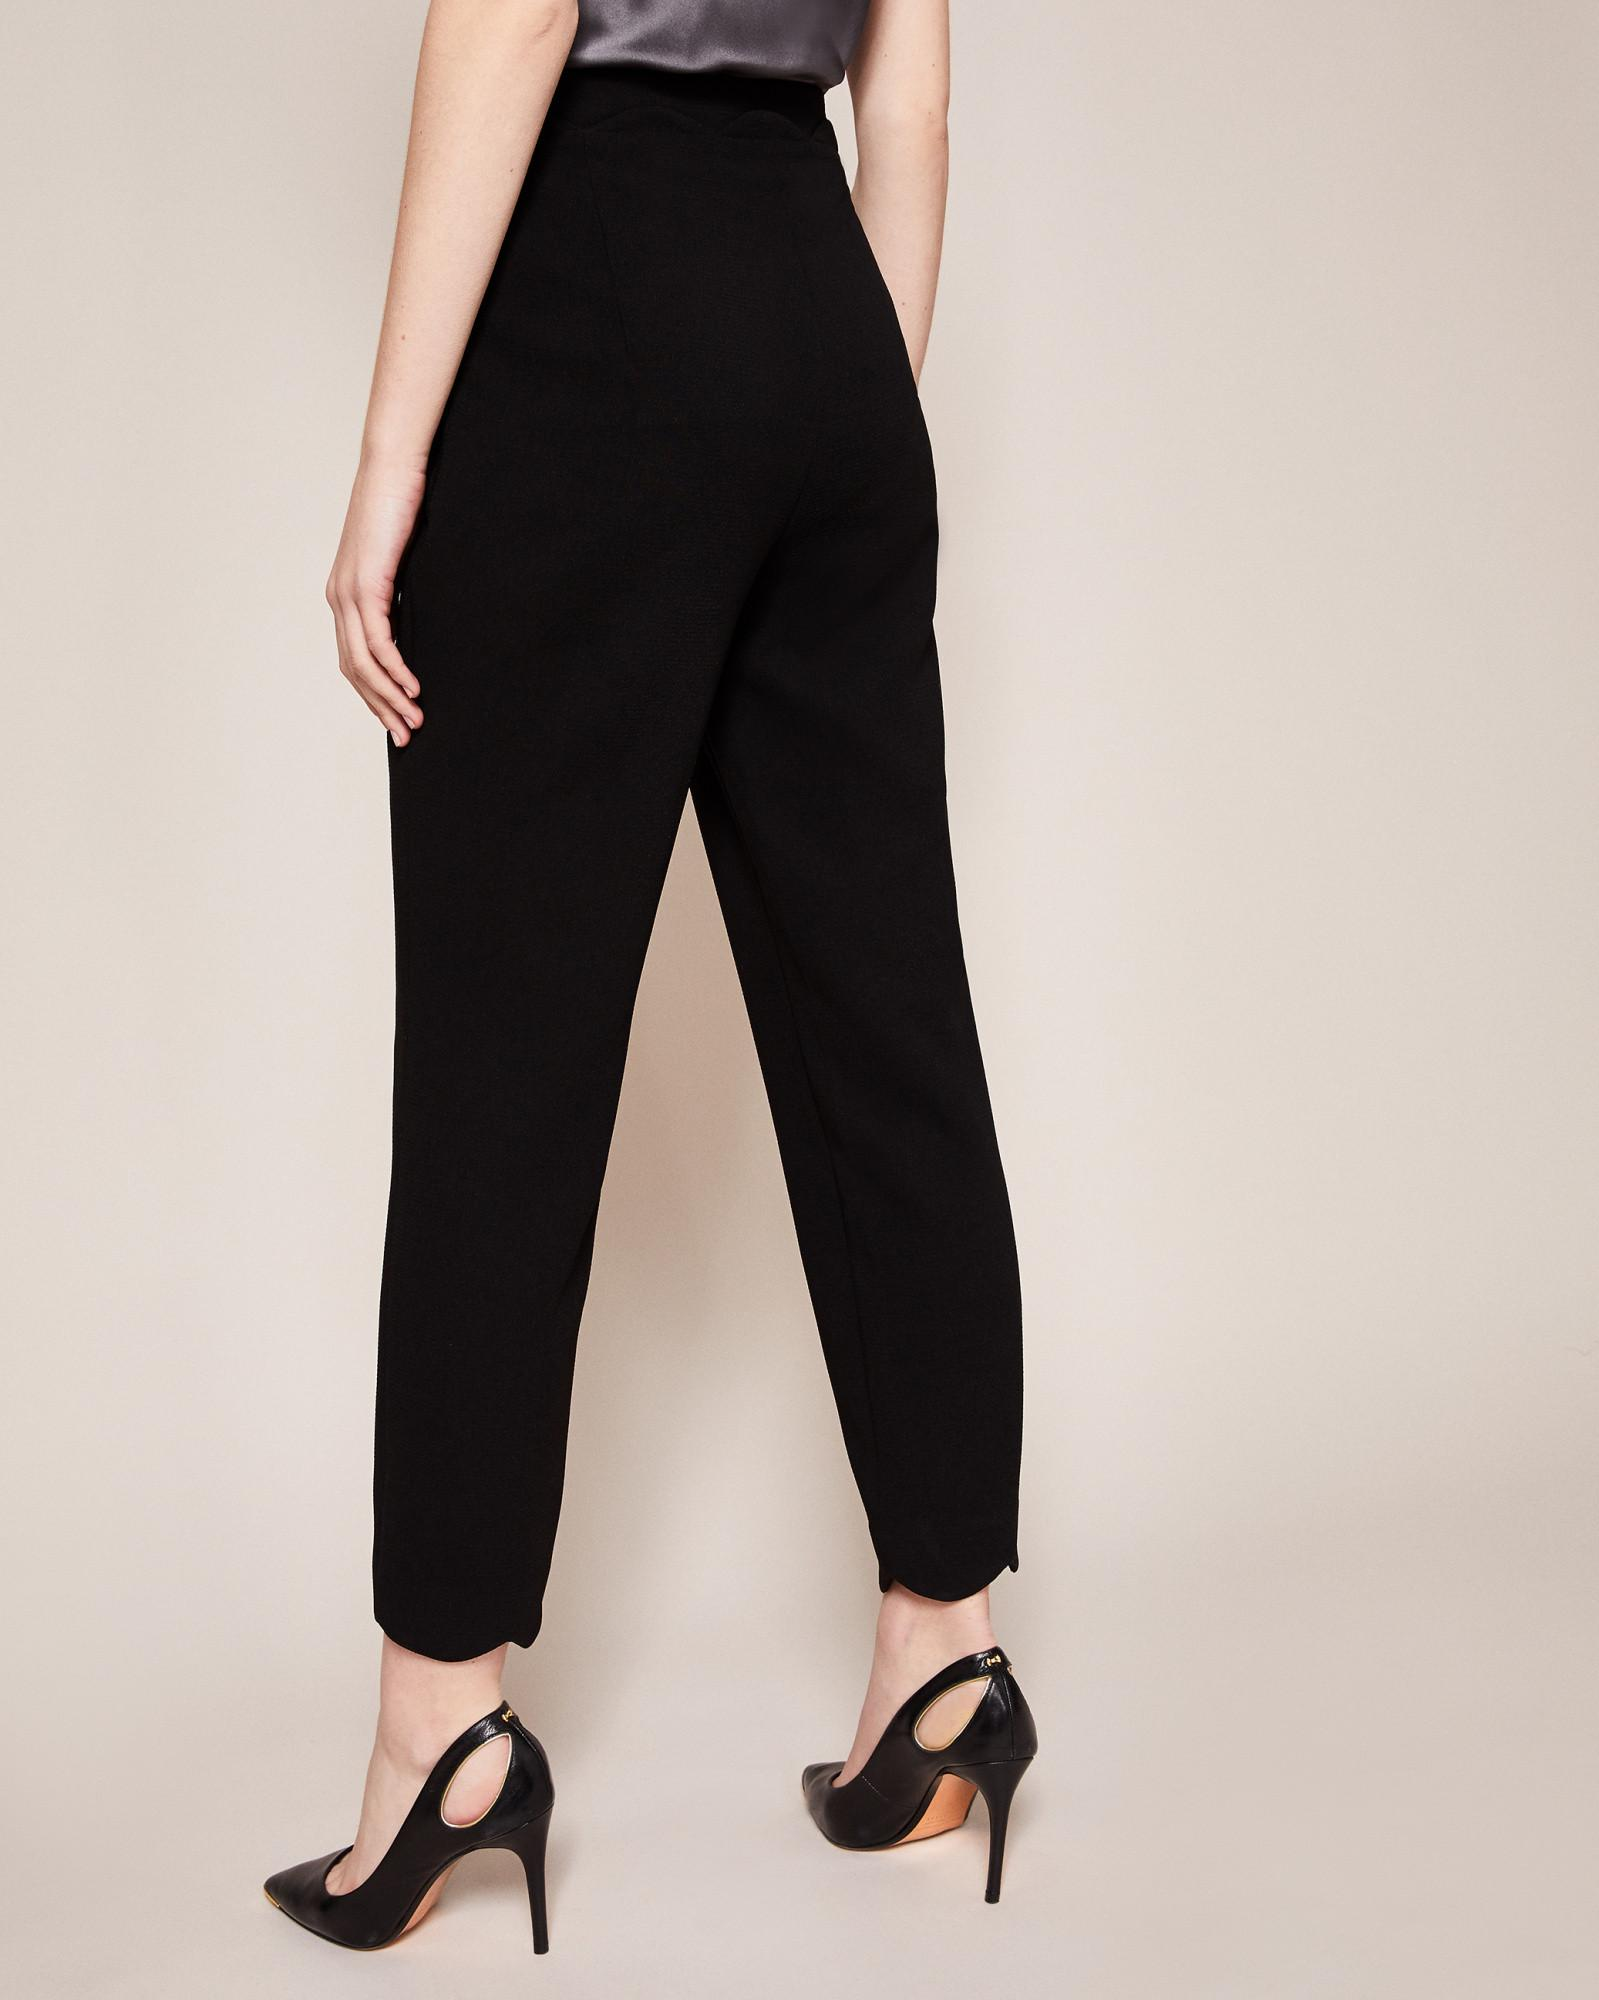 9ca921f69 Ted Baker Scallop Edge Suit Trousers in Black - Lyst